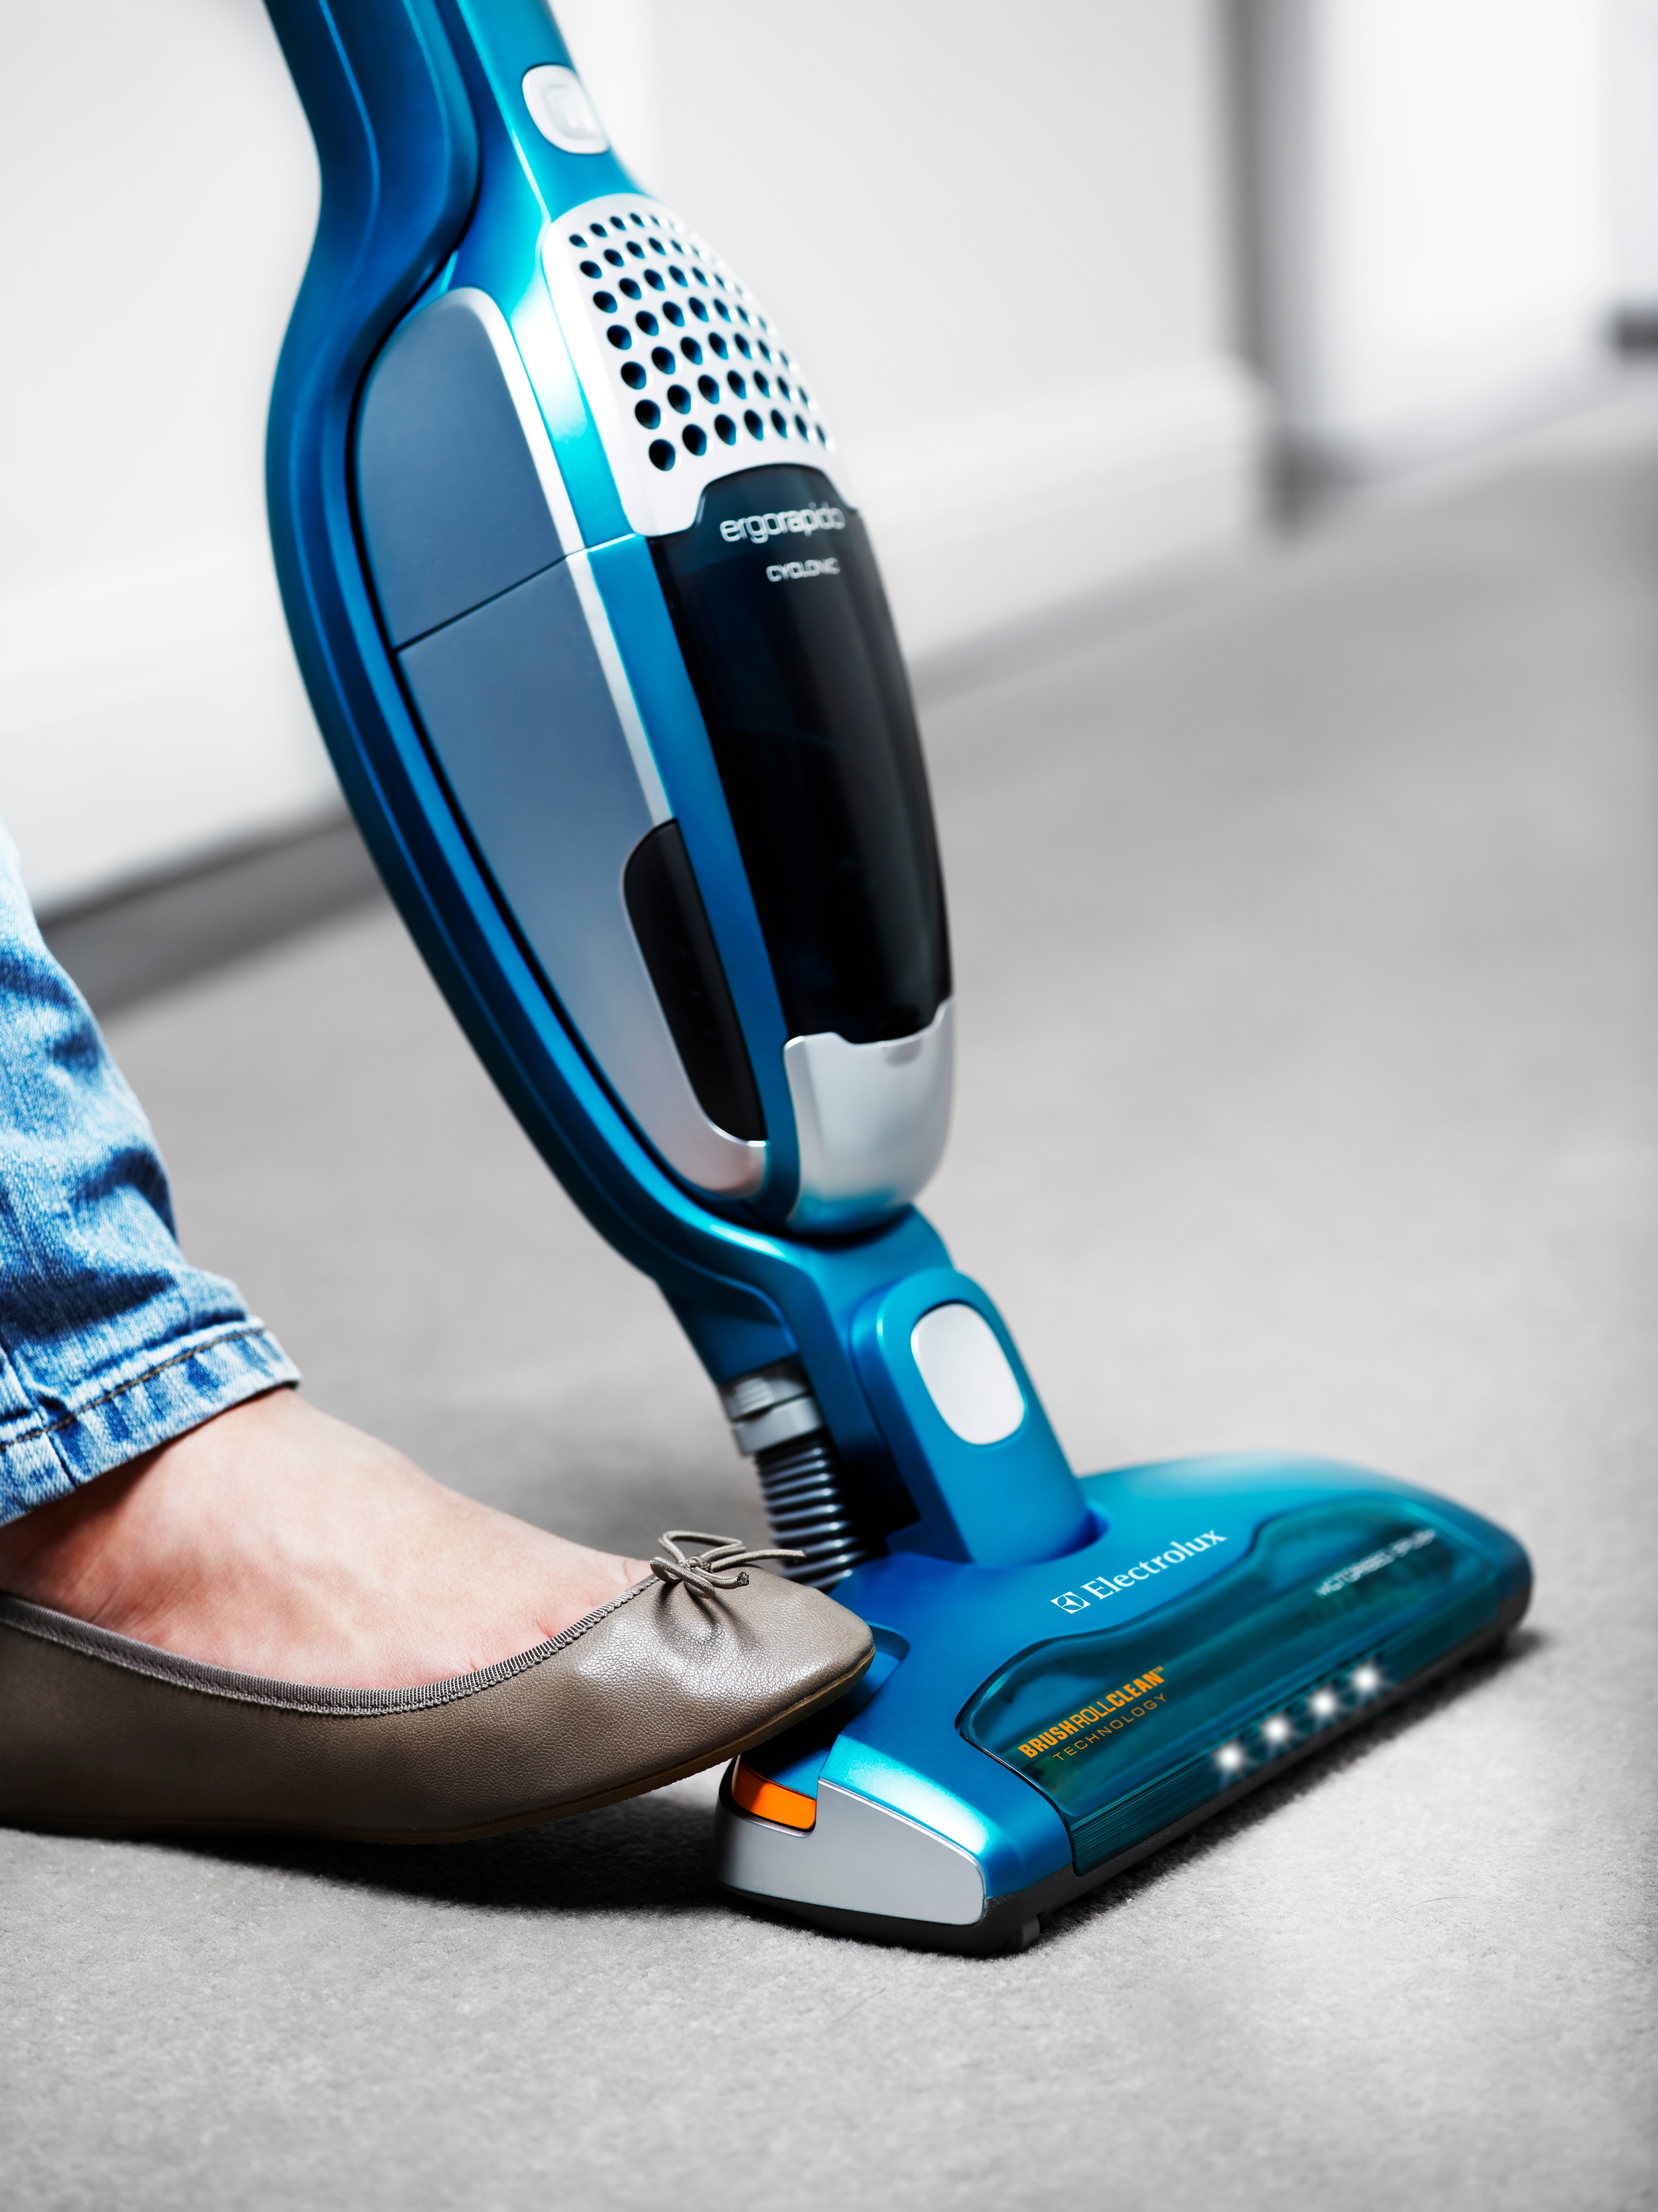 Electrolux introduces unique brushcleaning function